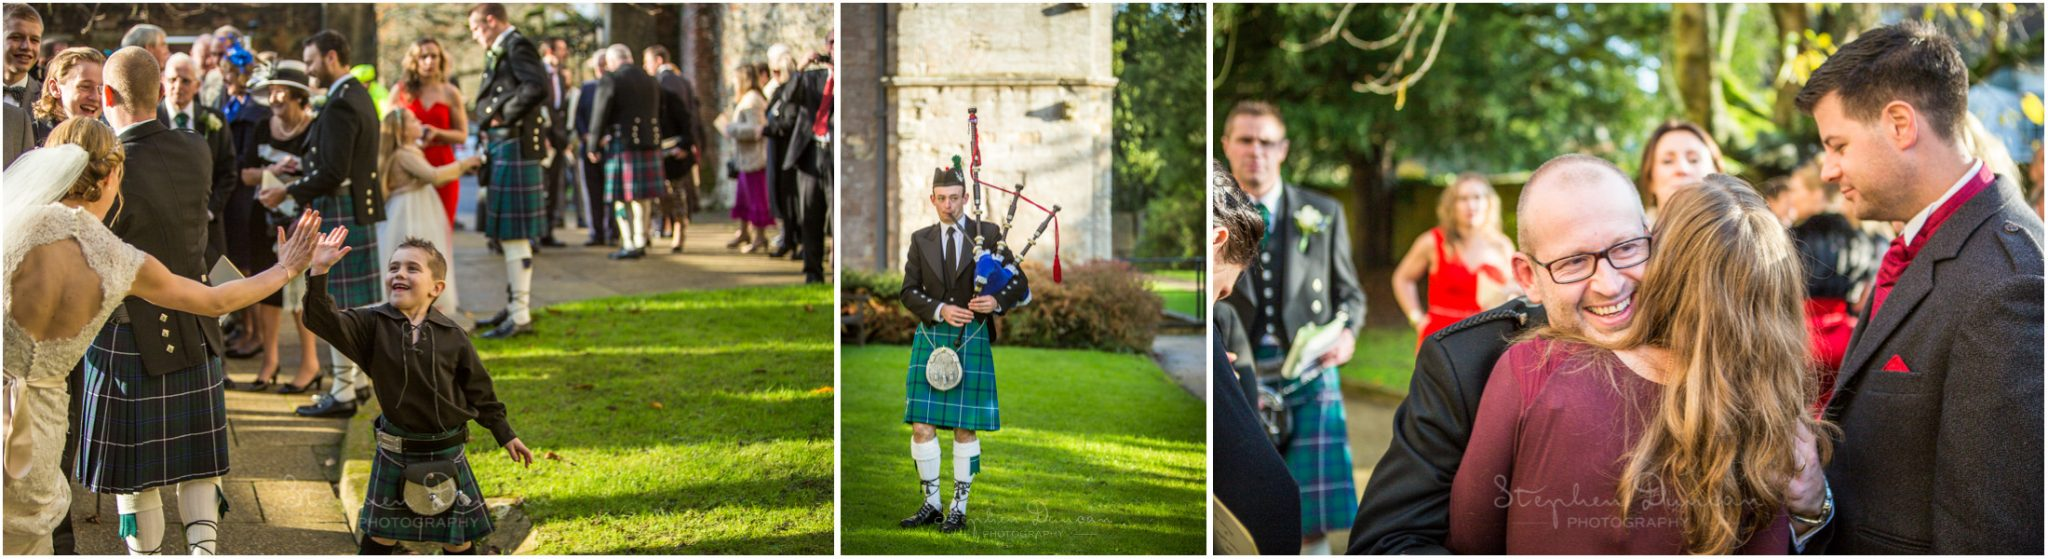 Romsey Abbey wedding photographer guests assemble in grounds of church with bagpiper